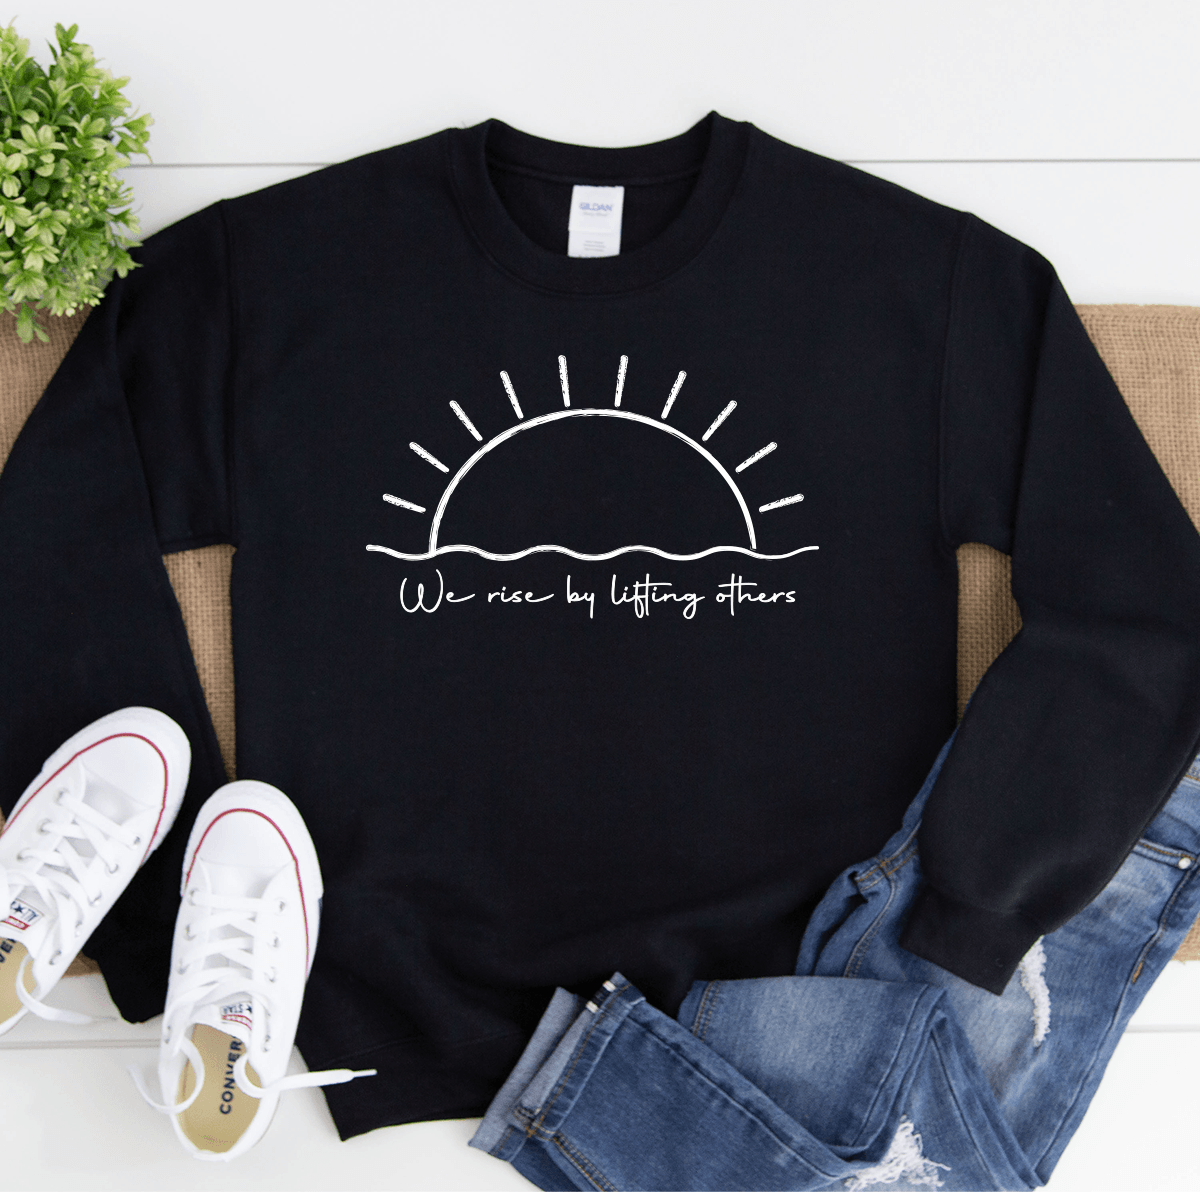 We Rise By Lifting Others - Sweatshirt